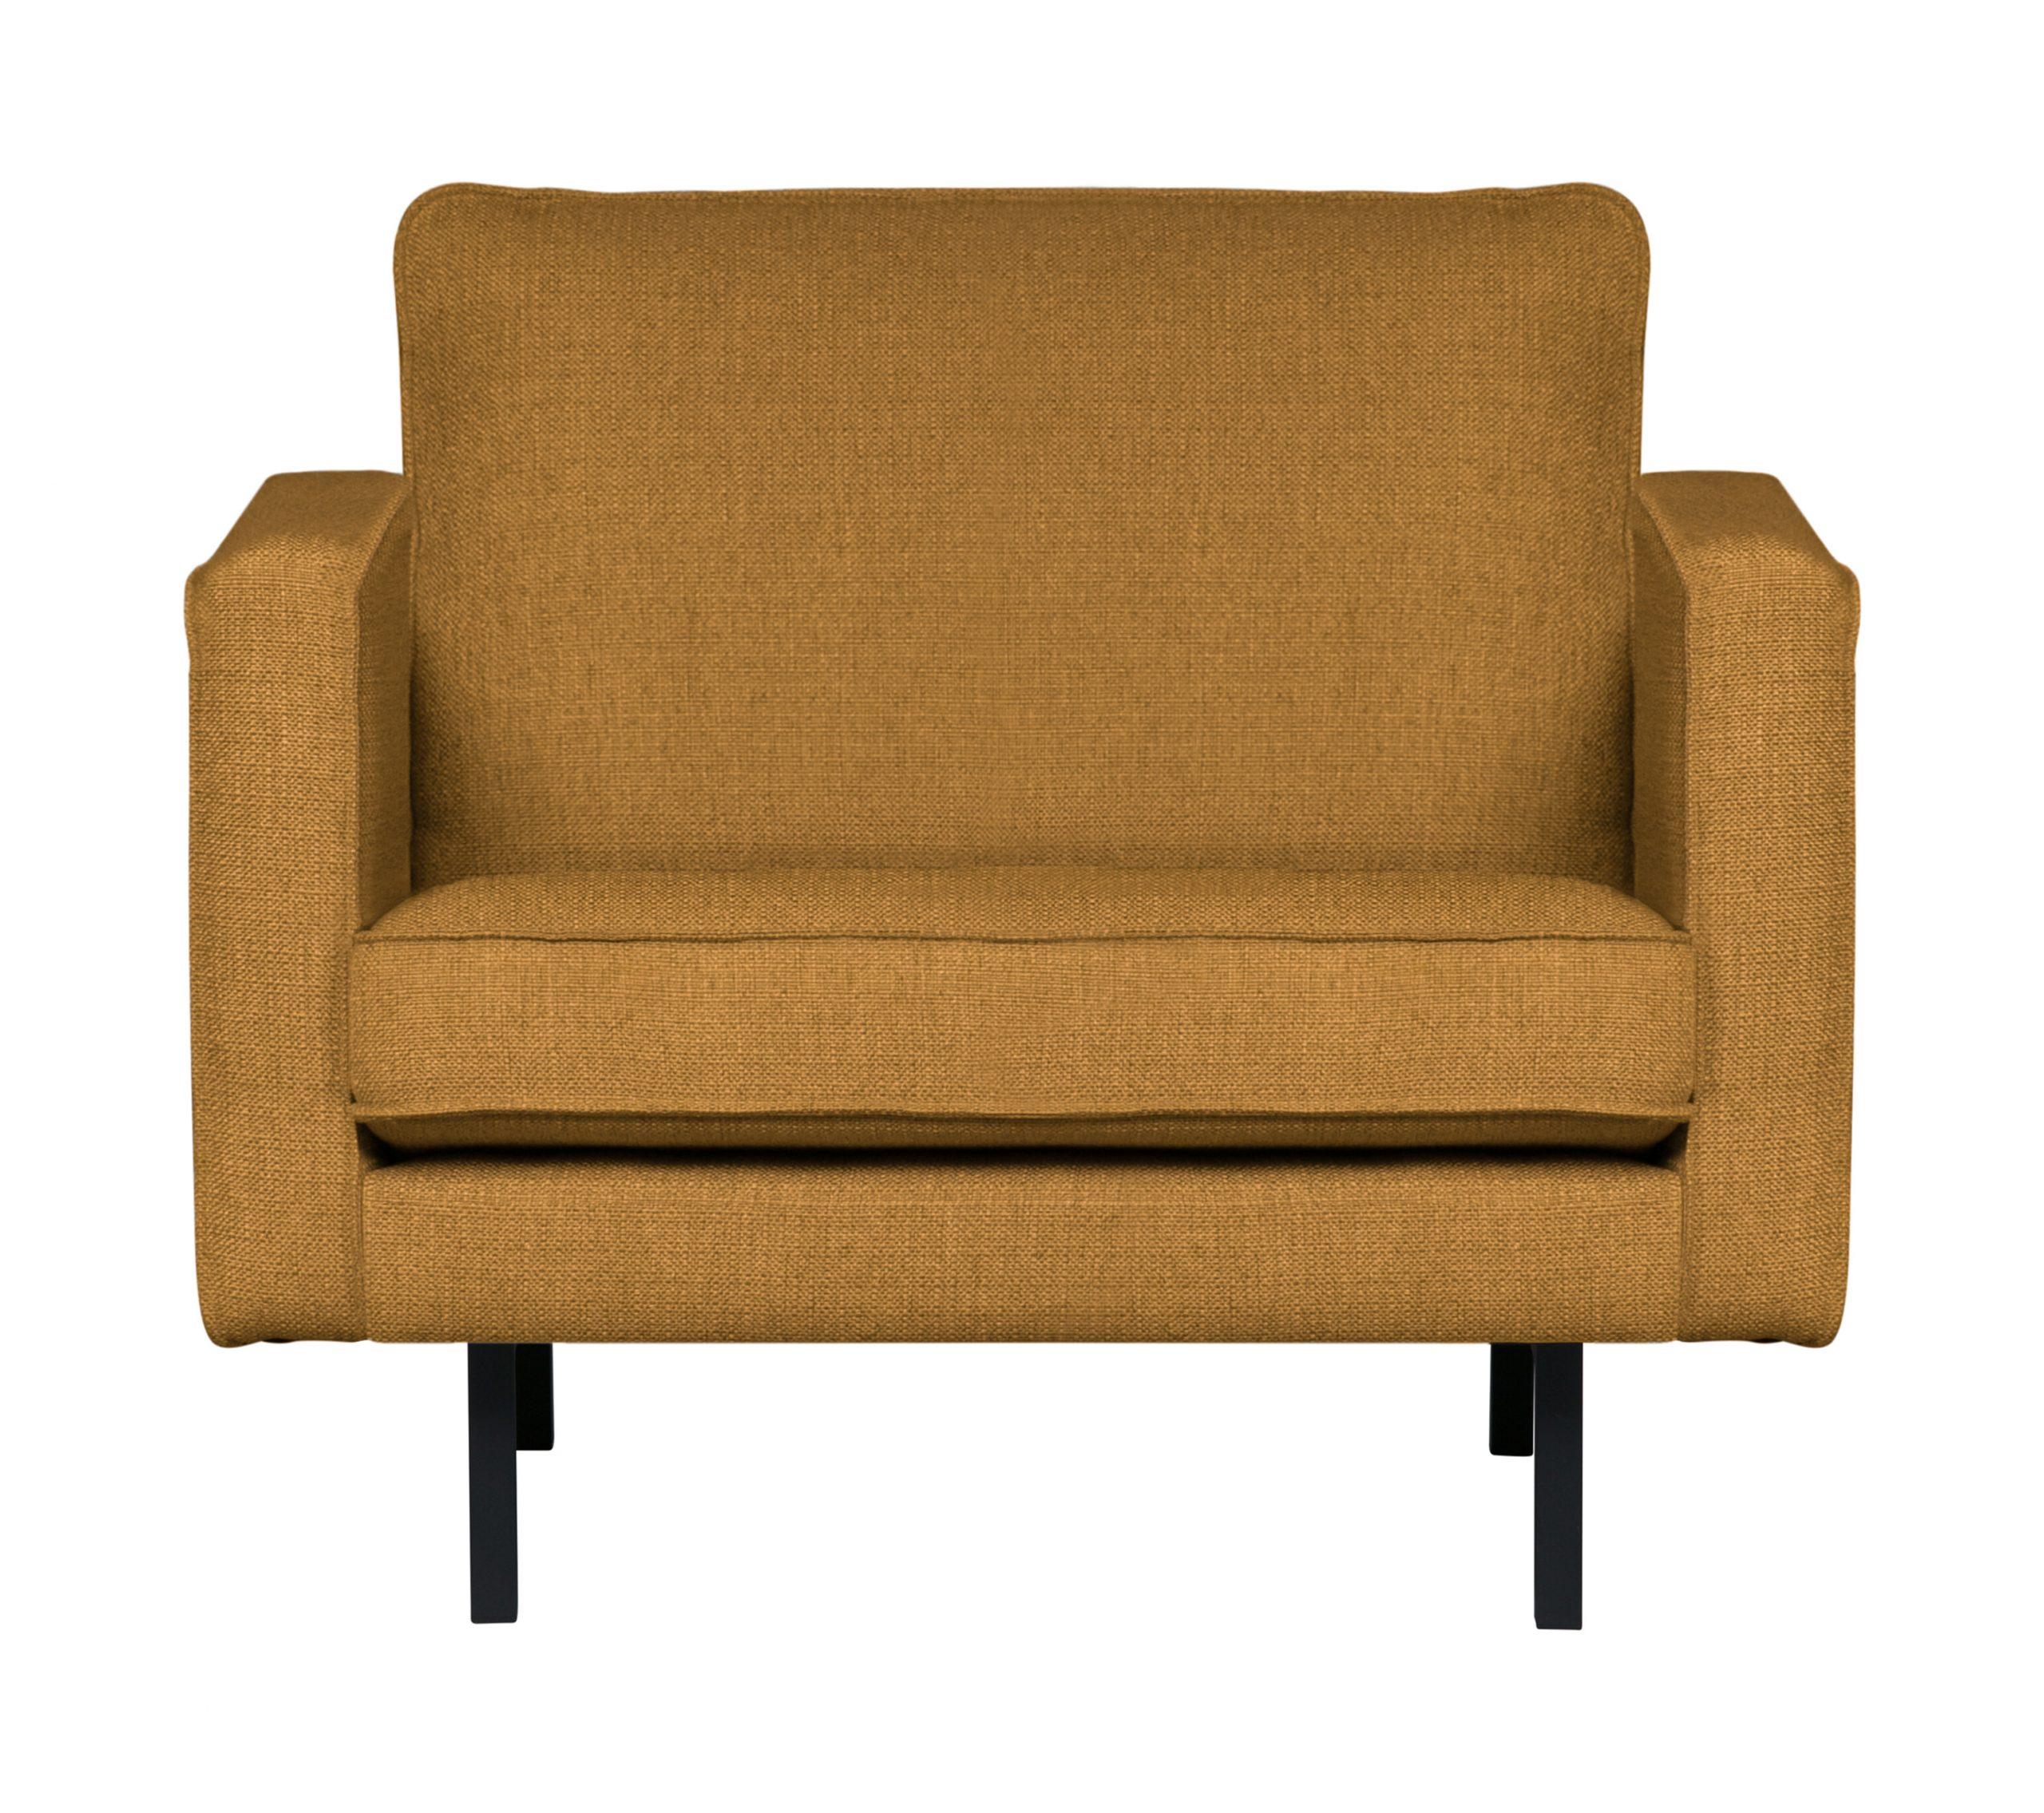 BePureHome Fauteuil 'Rodeo' Stretched, kleur Fudge | BePureHome